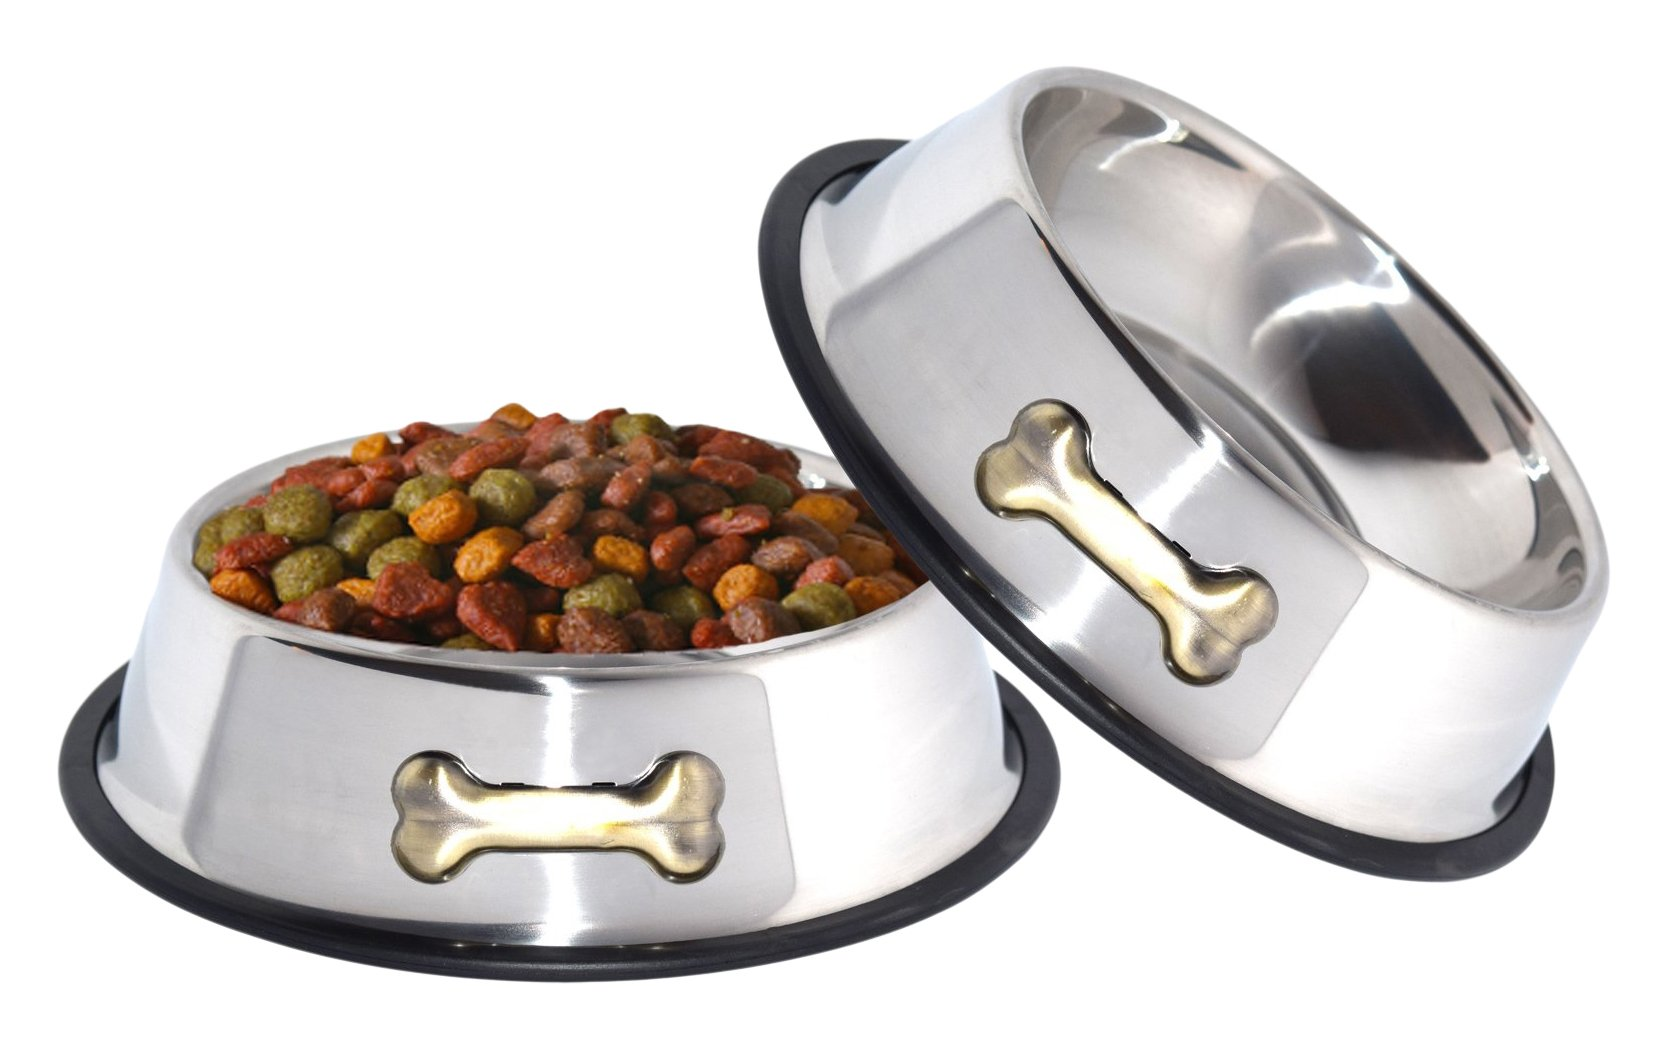 Gpet Dog Bowl 32 Ounce Stainless Steel With Rubber Base That Bowls Wont Slip .. 2